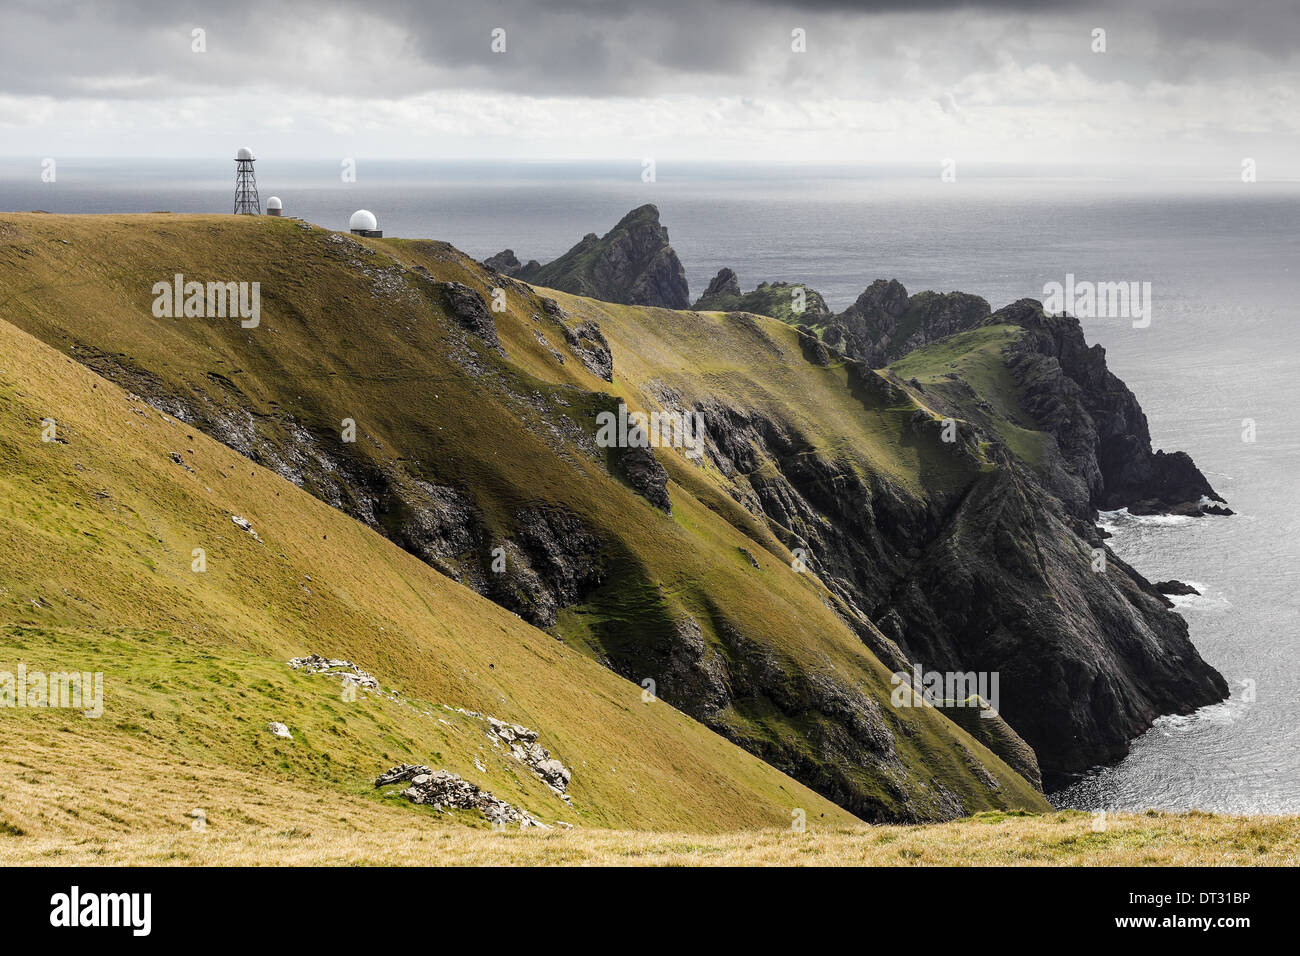 Looking towards Ruabhal and Dun on Hirta, St Kilda with radar towers visible on the skyline - Stock Image